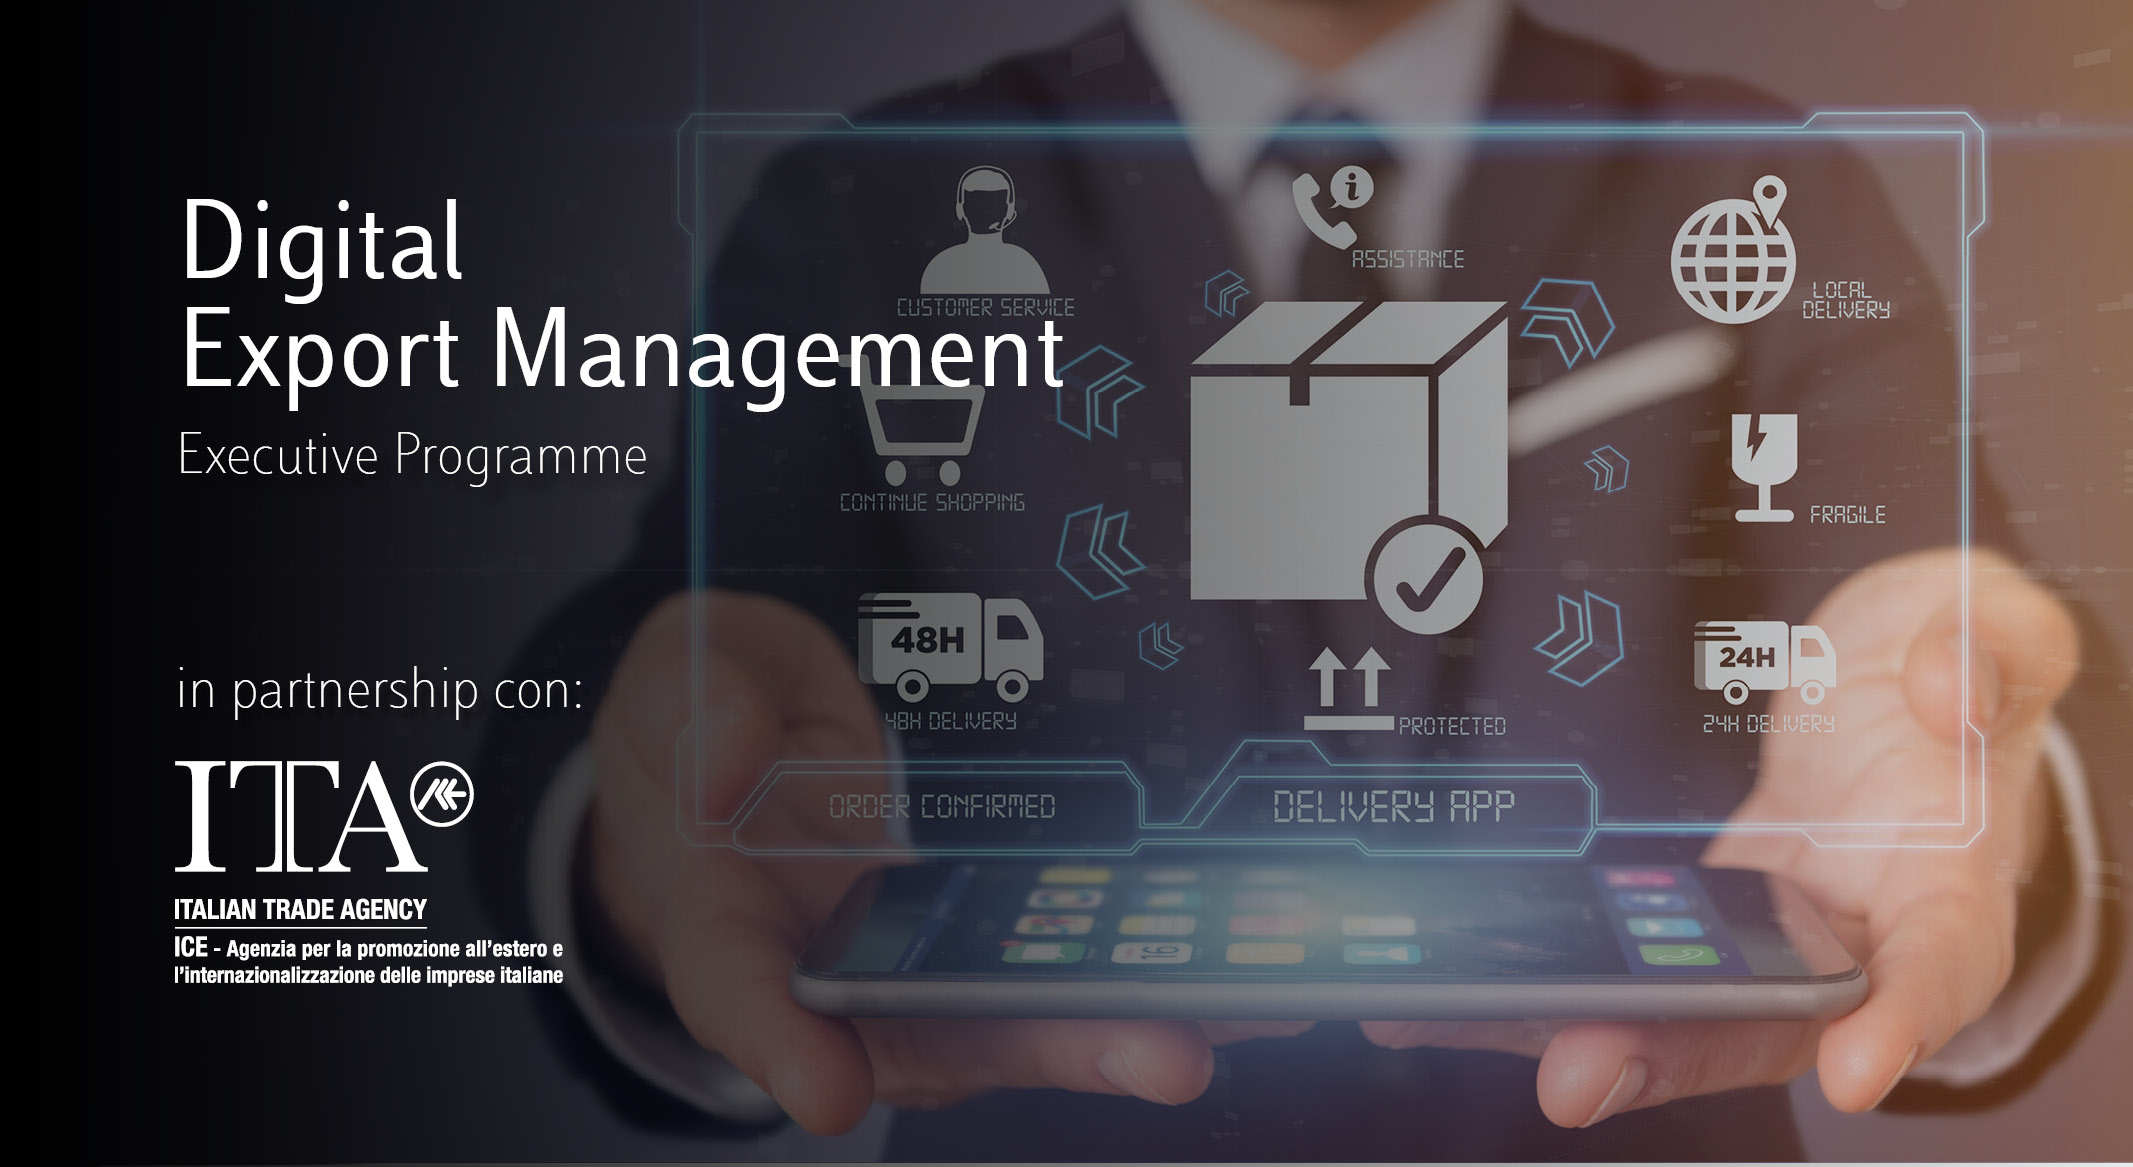 Digital Export Management